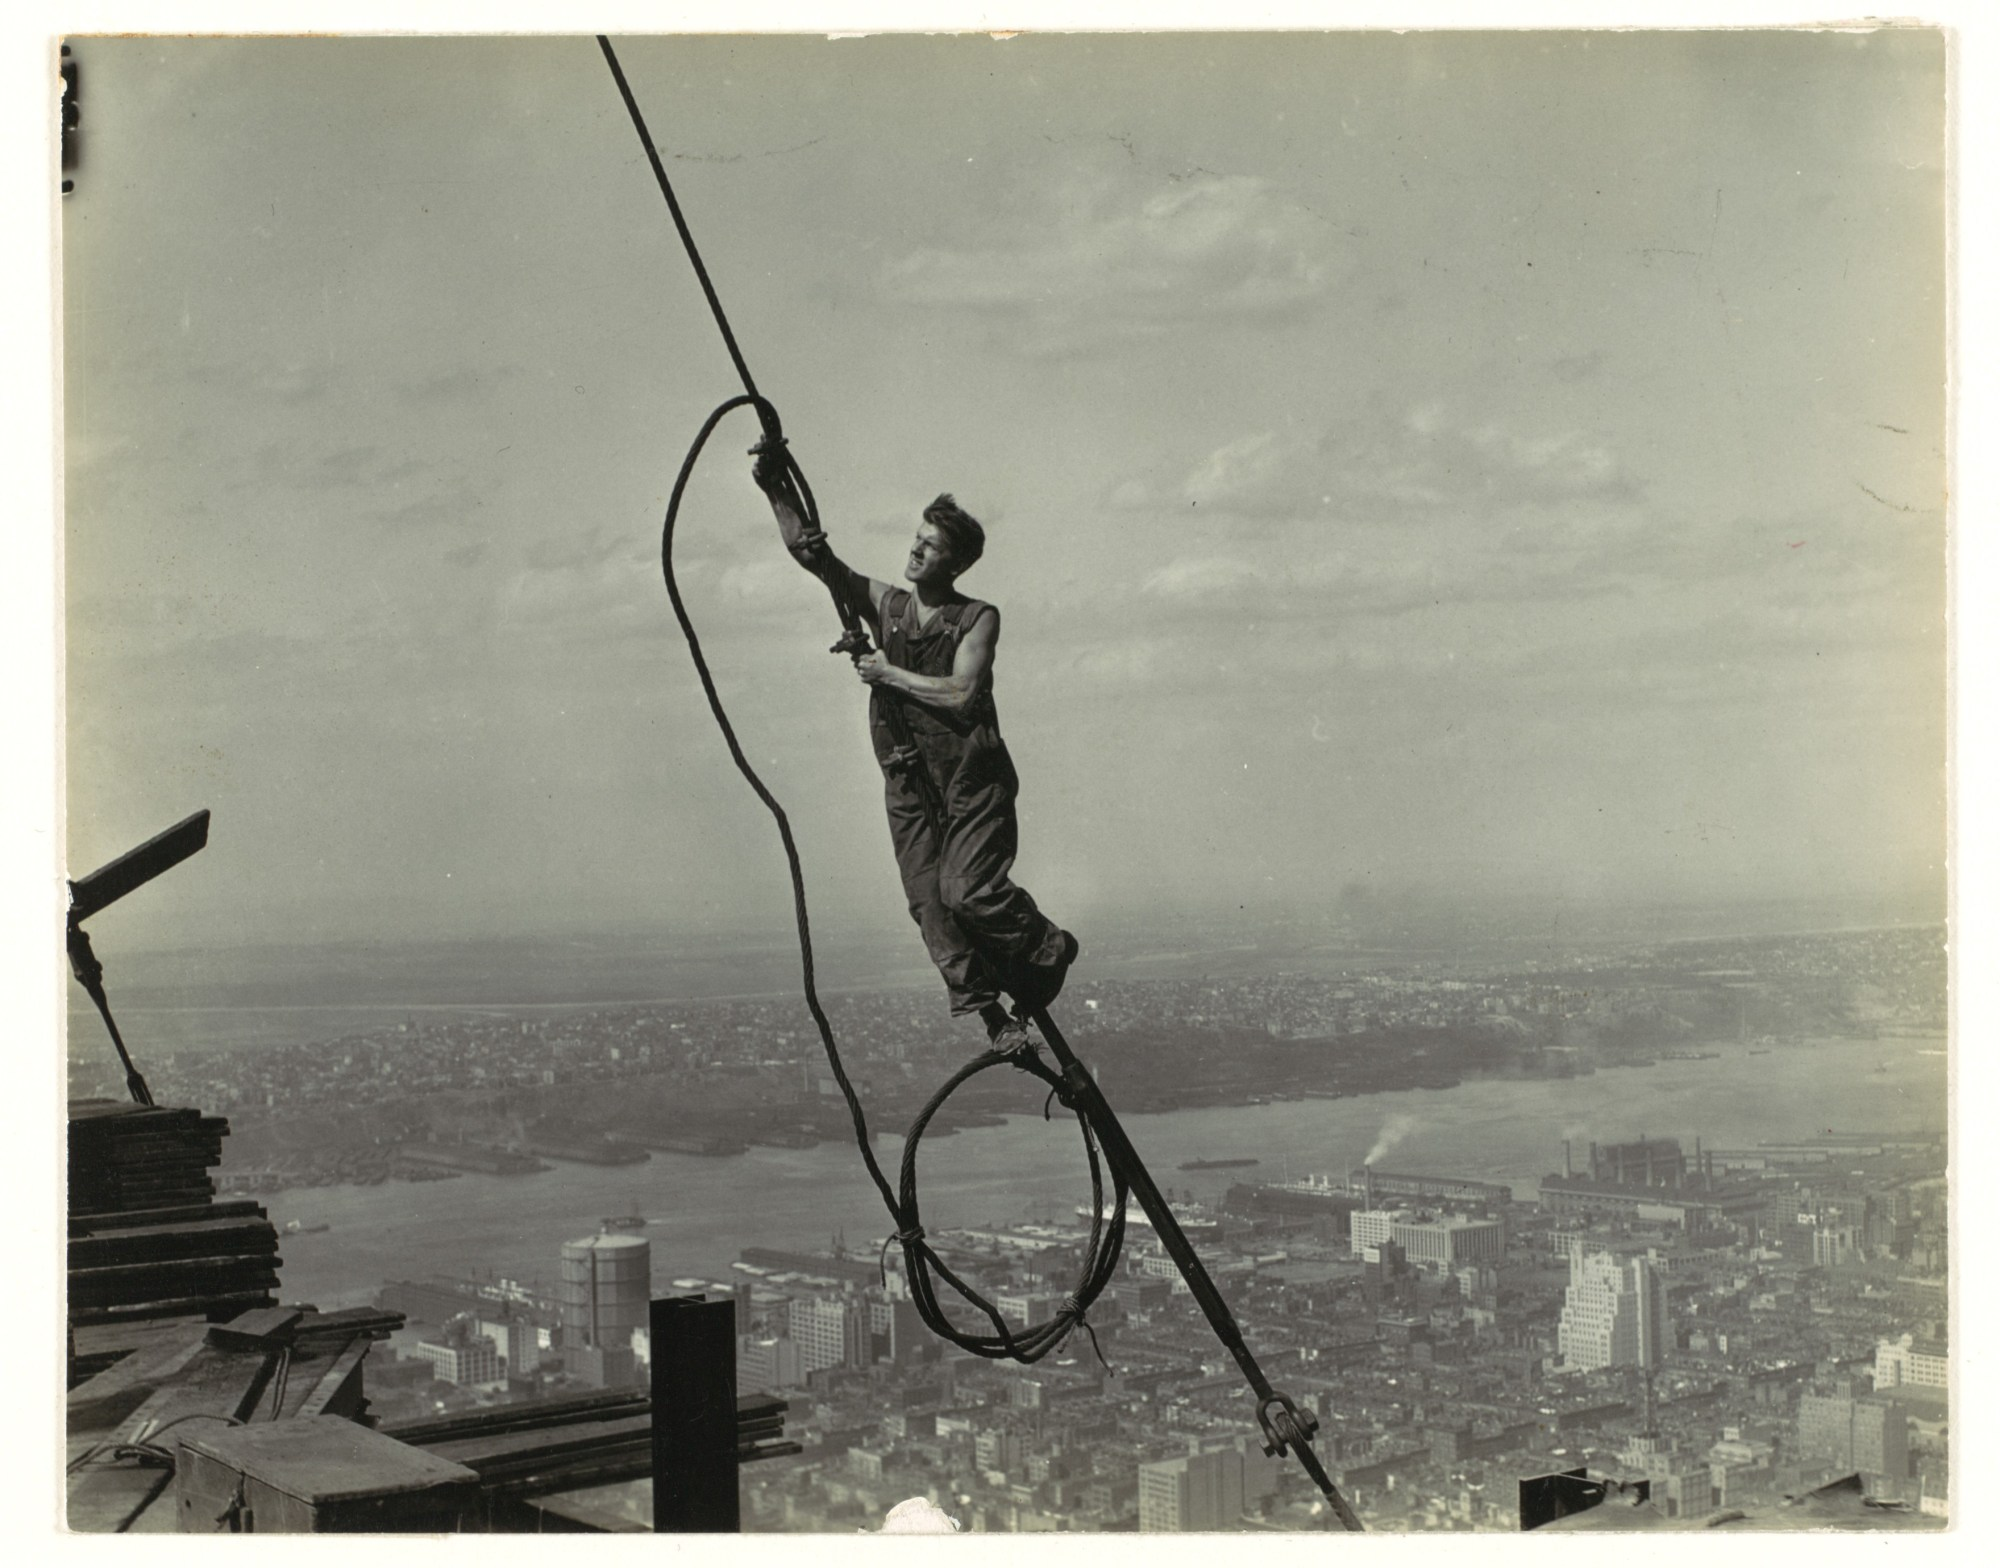 hight resolution of a photograph of a cable worker taken by lewis hine as part of his project